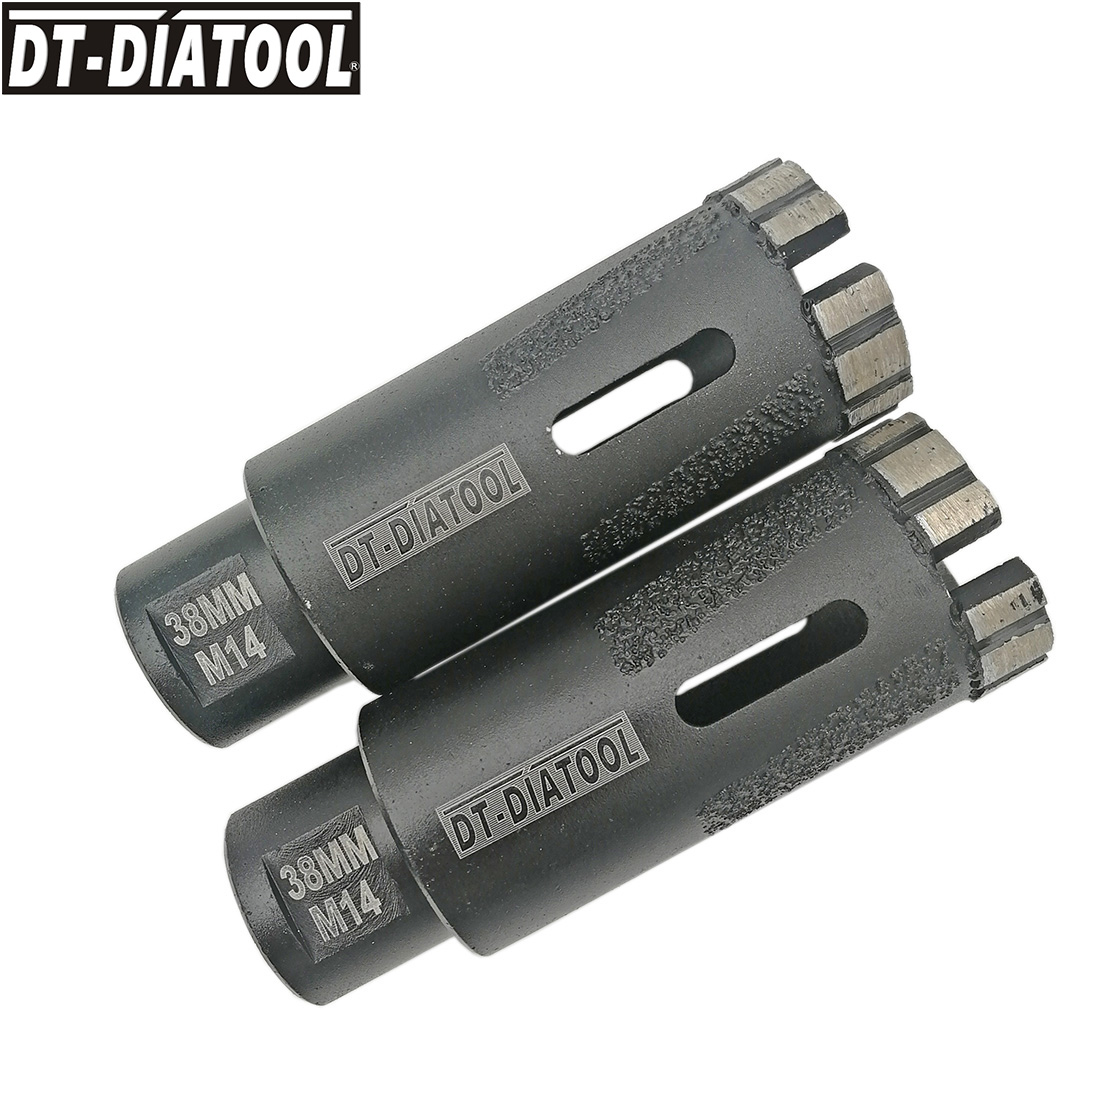 DT DIATOOL 2pieces Dia 38mm Laser Welded Diamond Dry Drilling Hole Saw Core Bits With Side Protection M14 Connection Dry or Wet